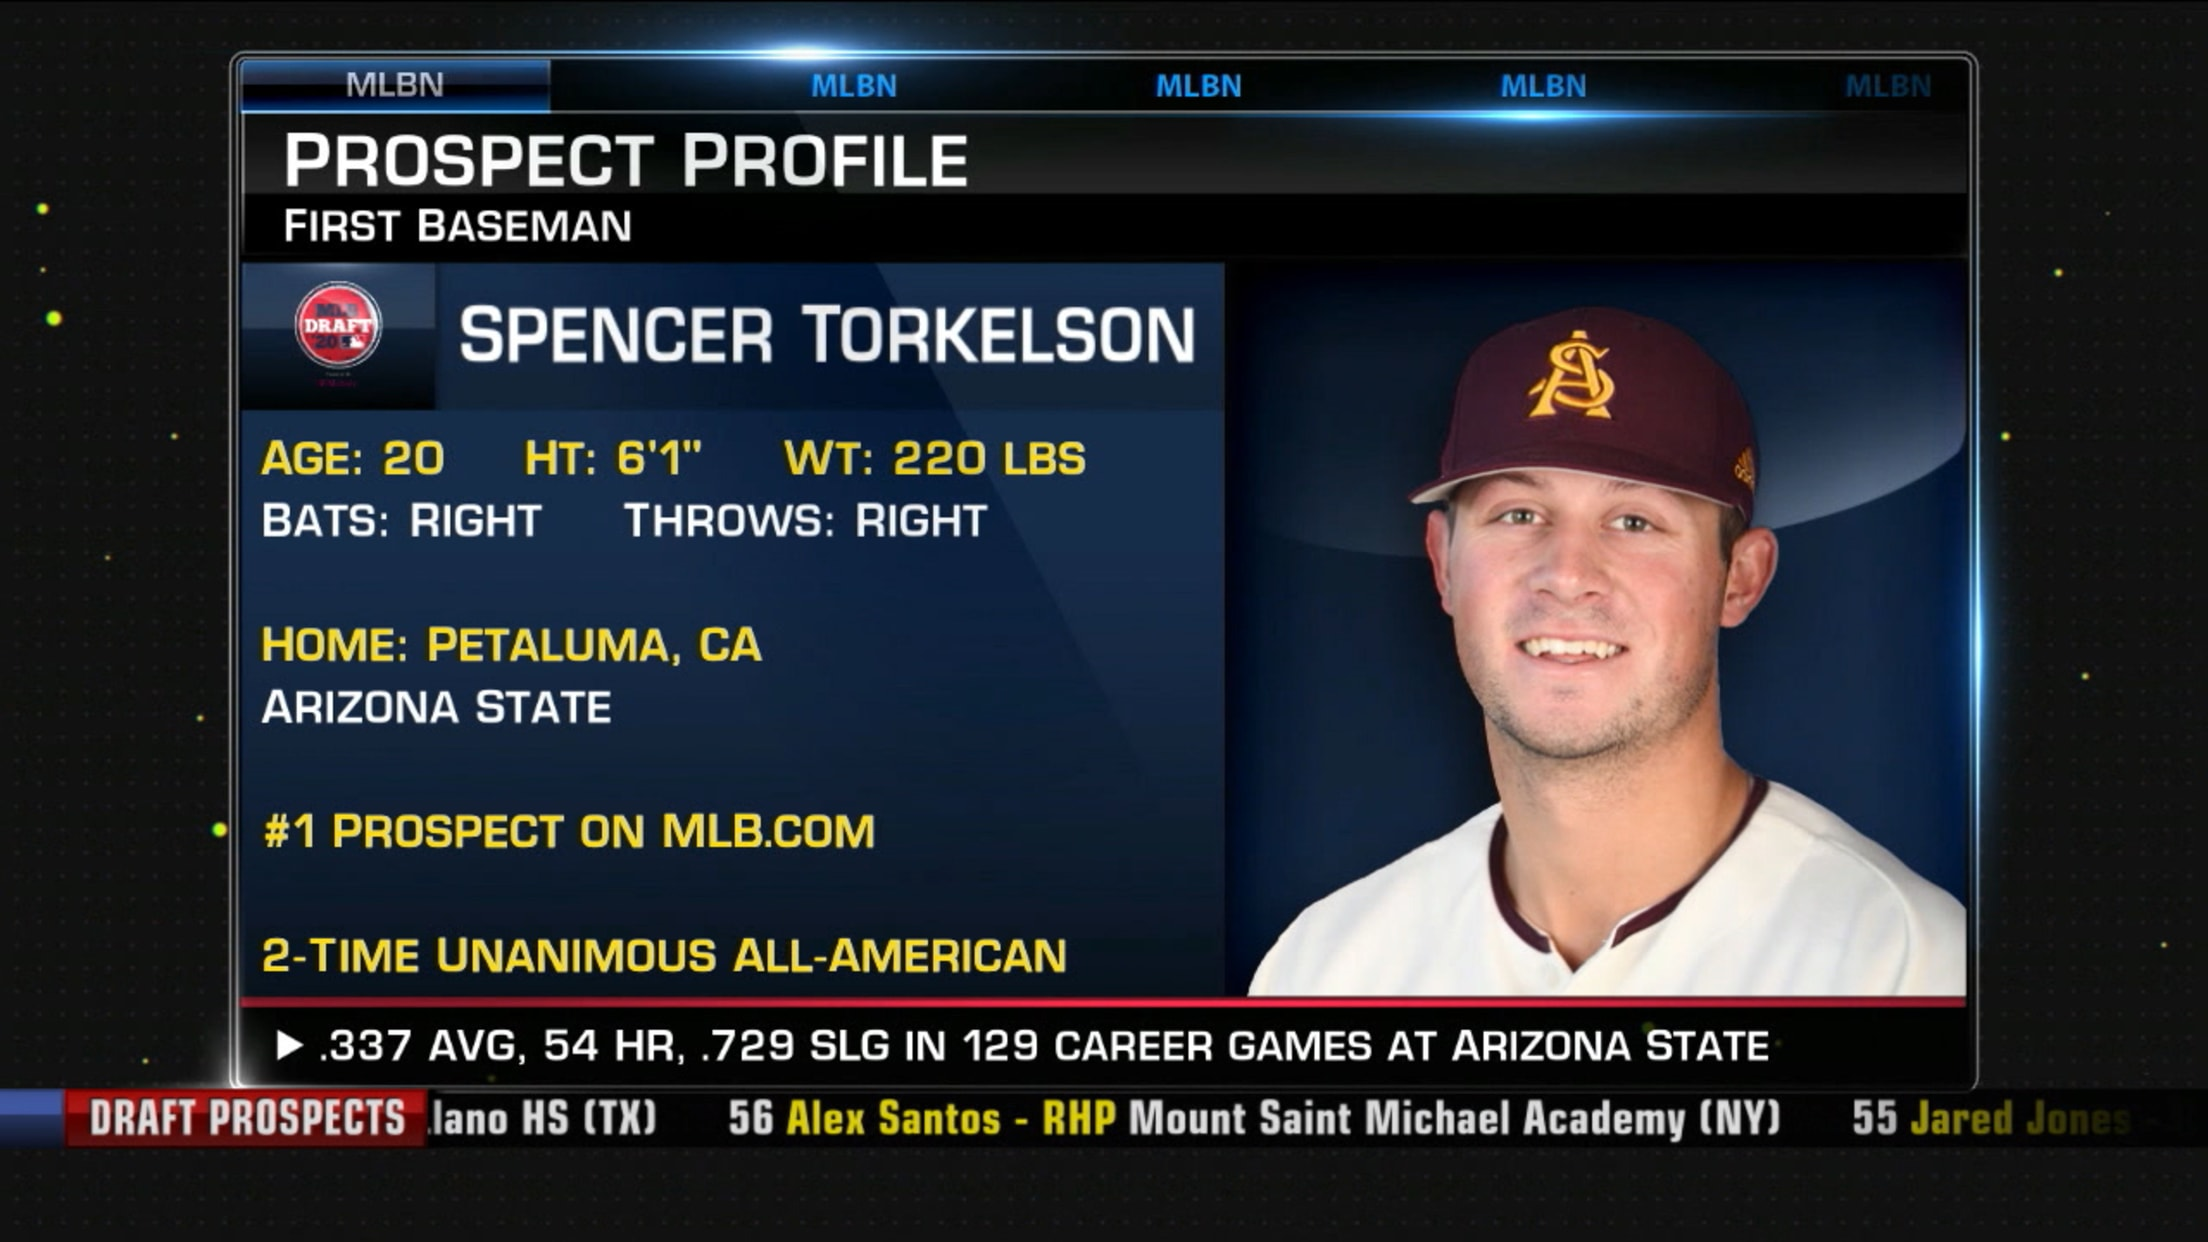 Breaking down Spencer Torkelson